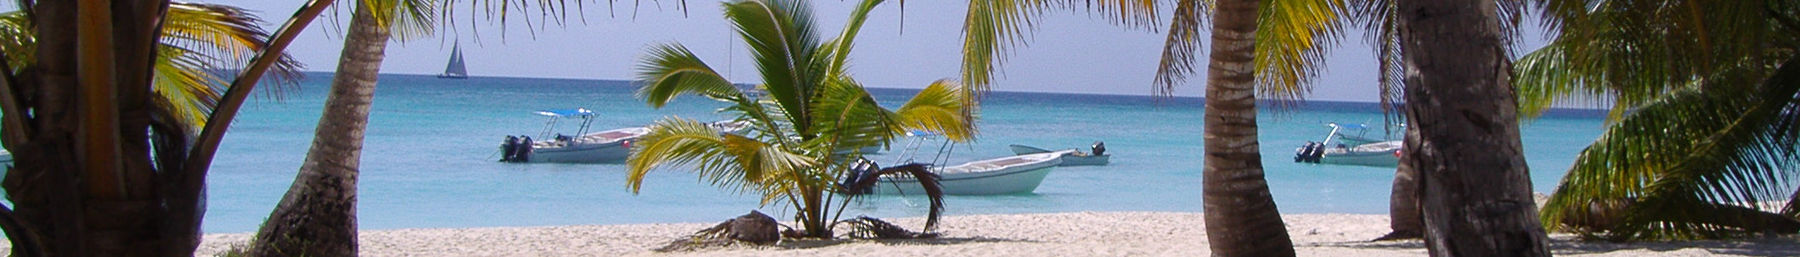 Dominican Republic banner Beach with palms and boats.jpg